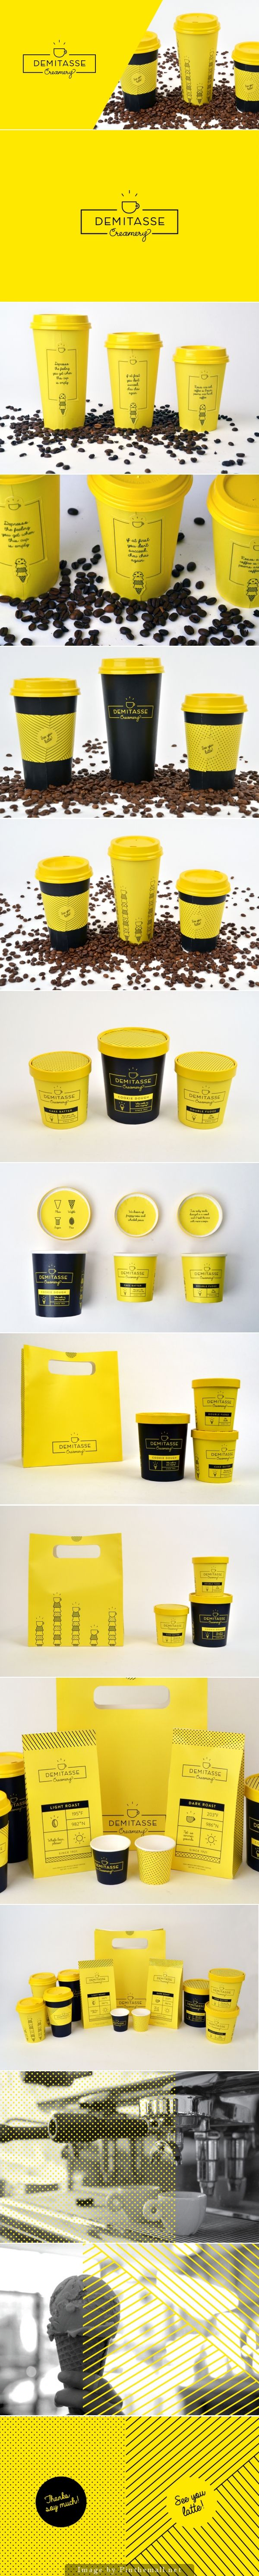 Student: Did I miss this Demitasse Creamery #identity #packaging #branding PD